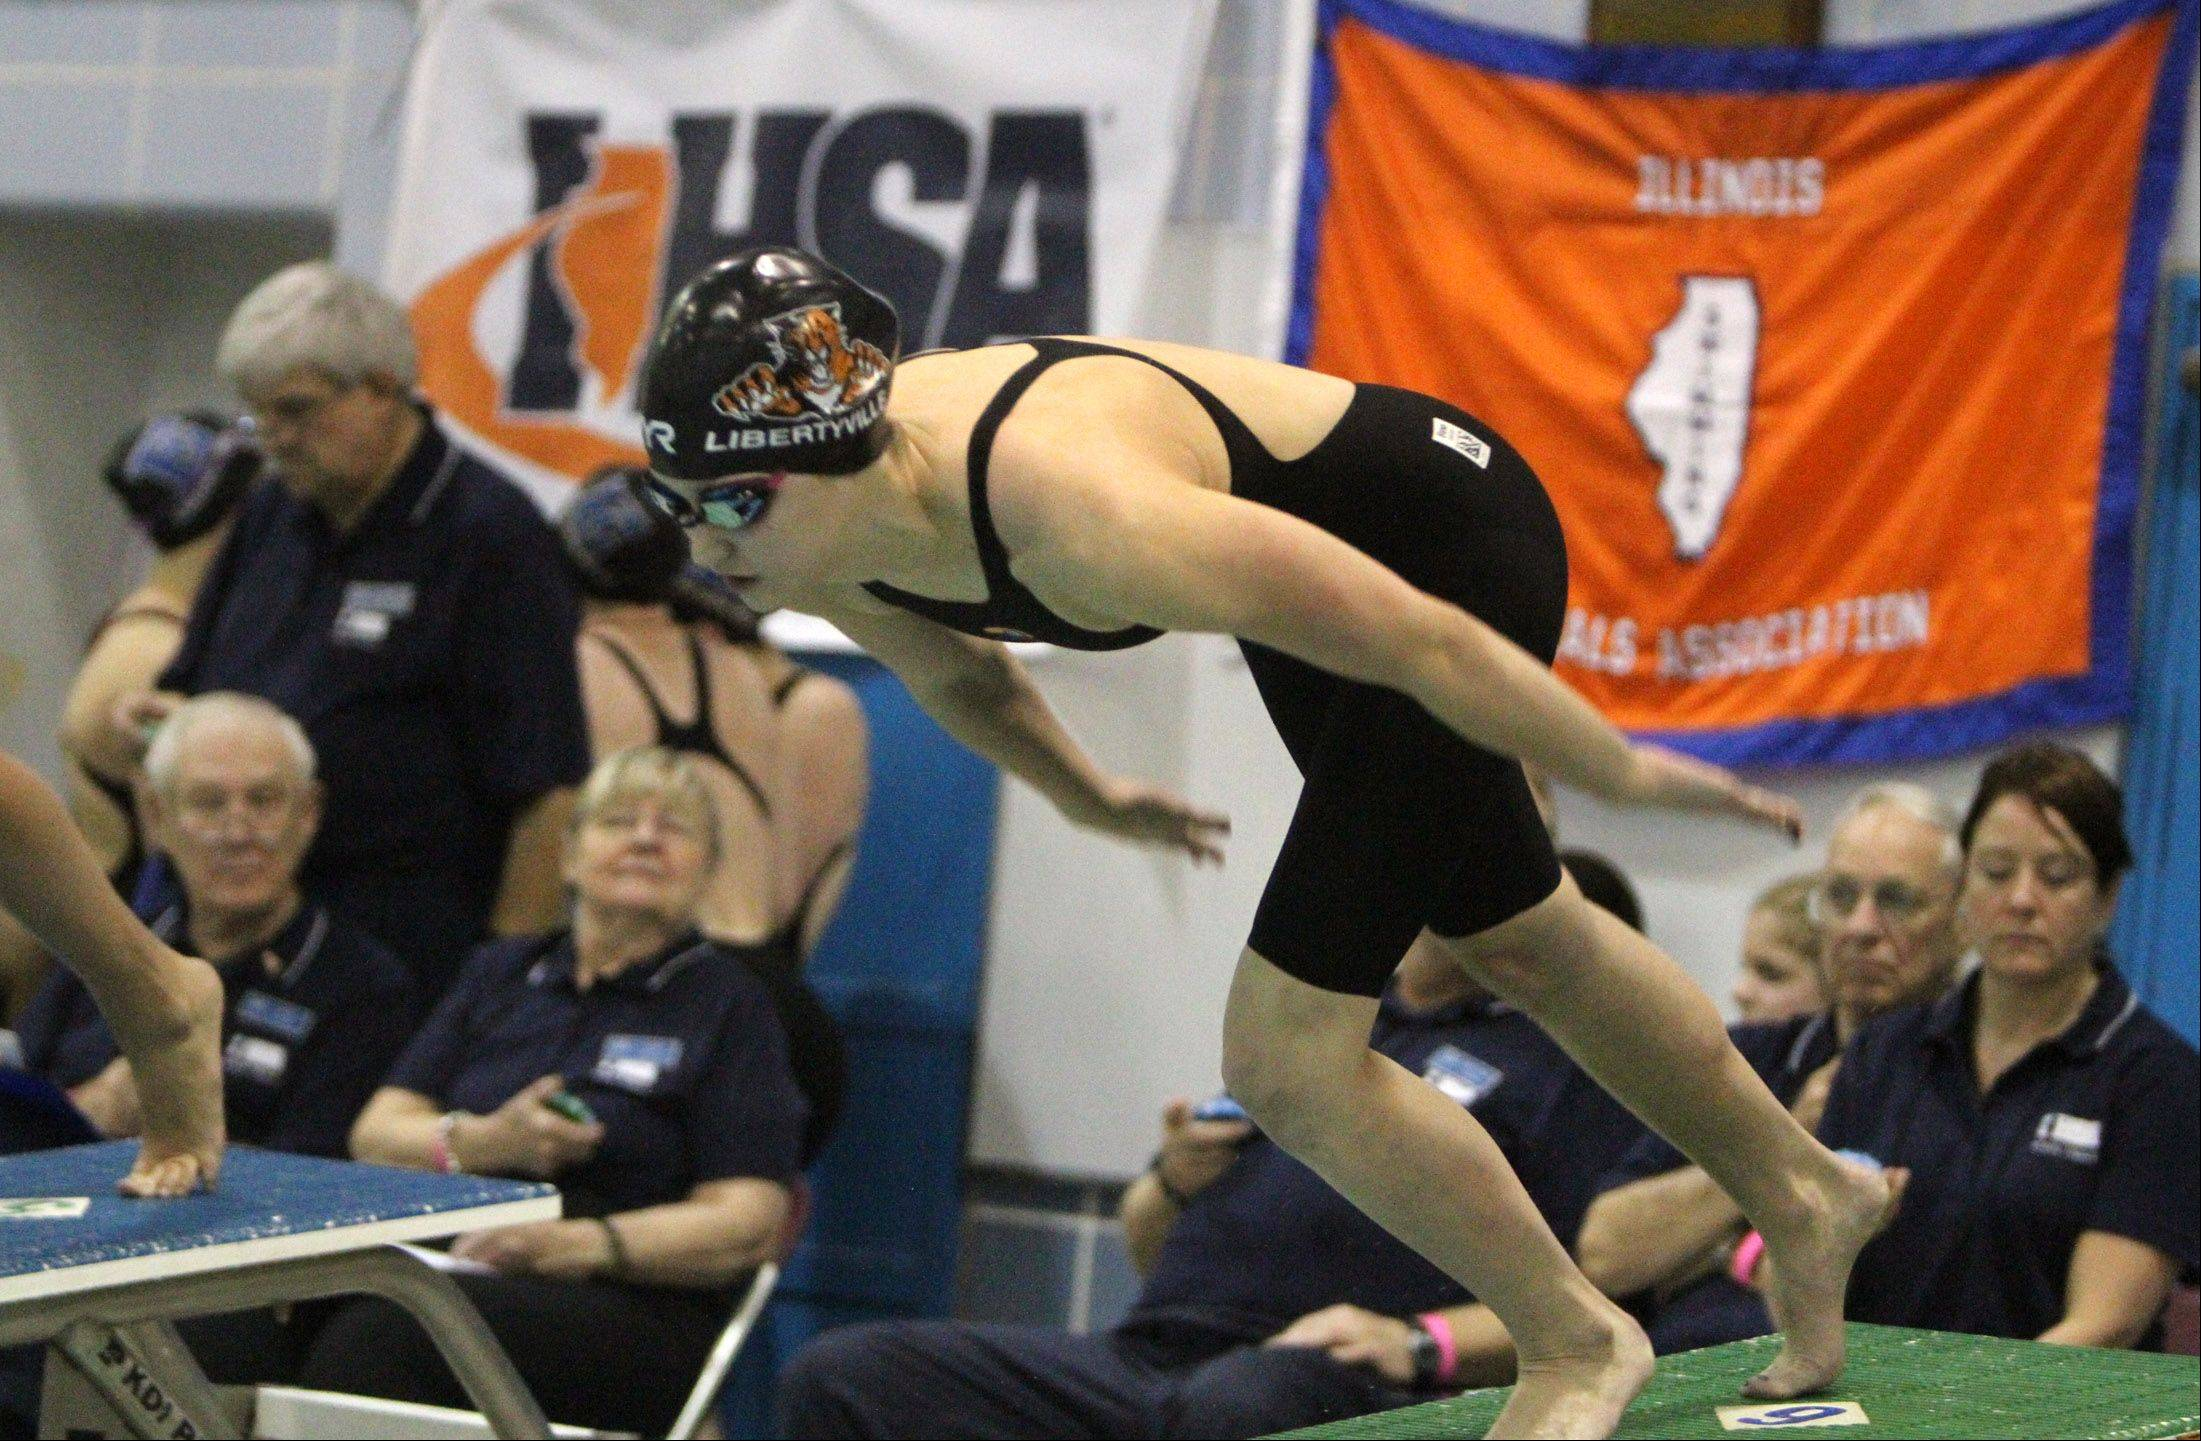 Libertyville's Morgan Dickson finished third in the 500-yard freestyle with a time of 4:55.64 in the state meet preliminaries in Winnetka on Friday.